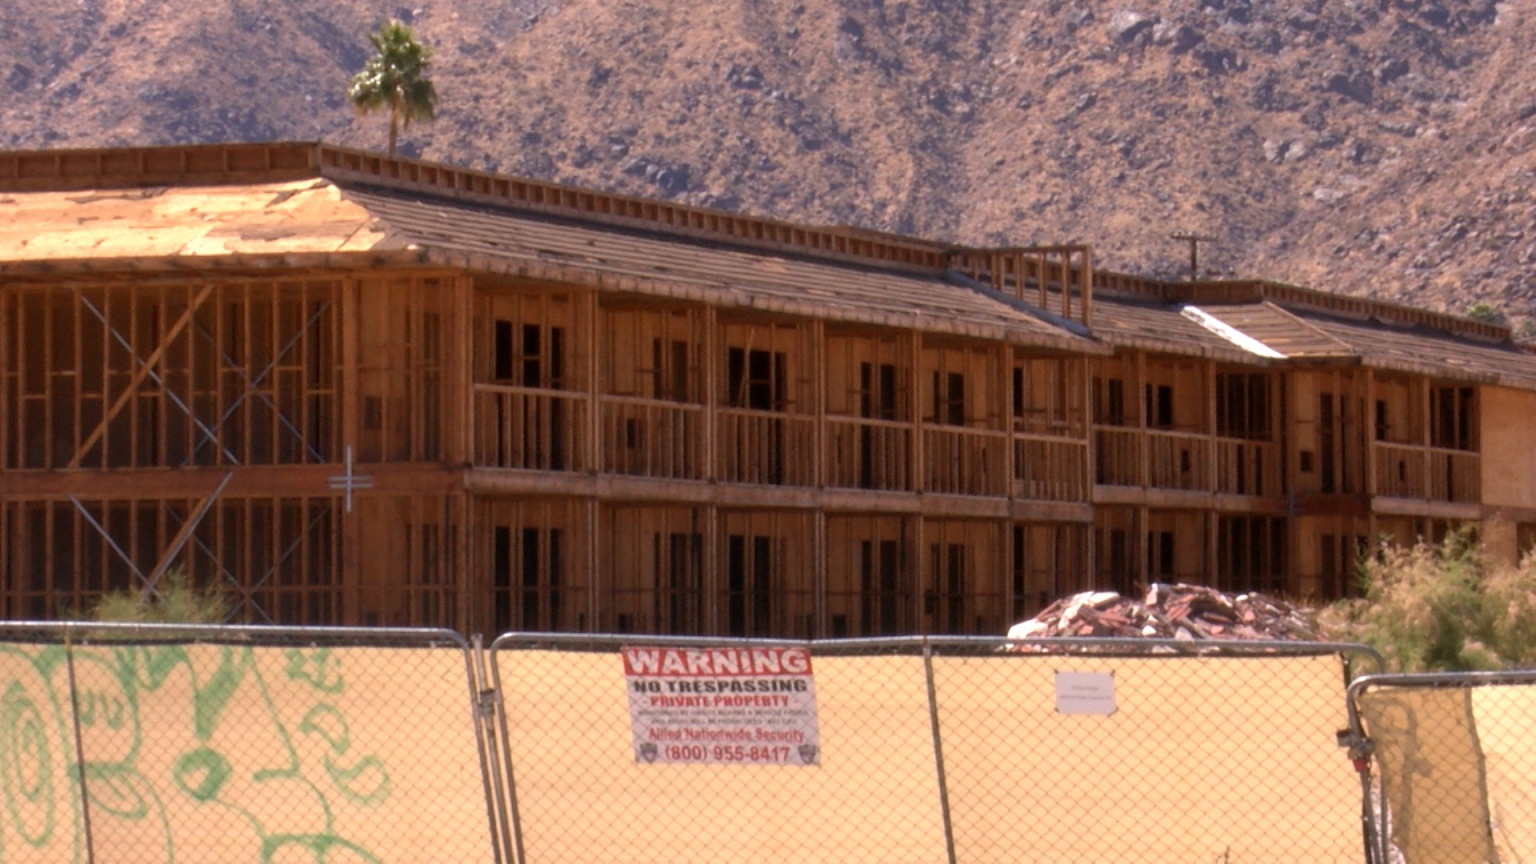 Palm Springs Taking Action On Unfinished Hotels